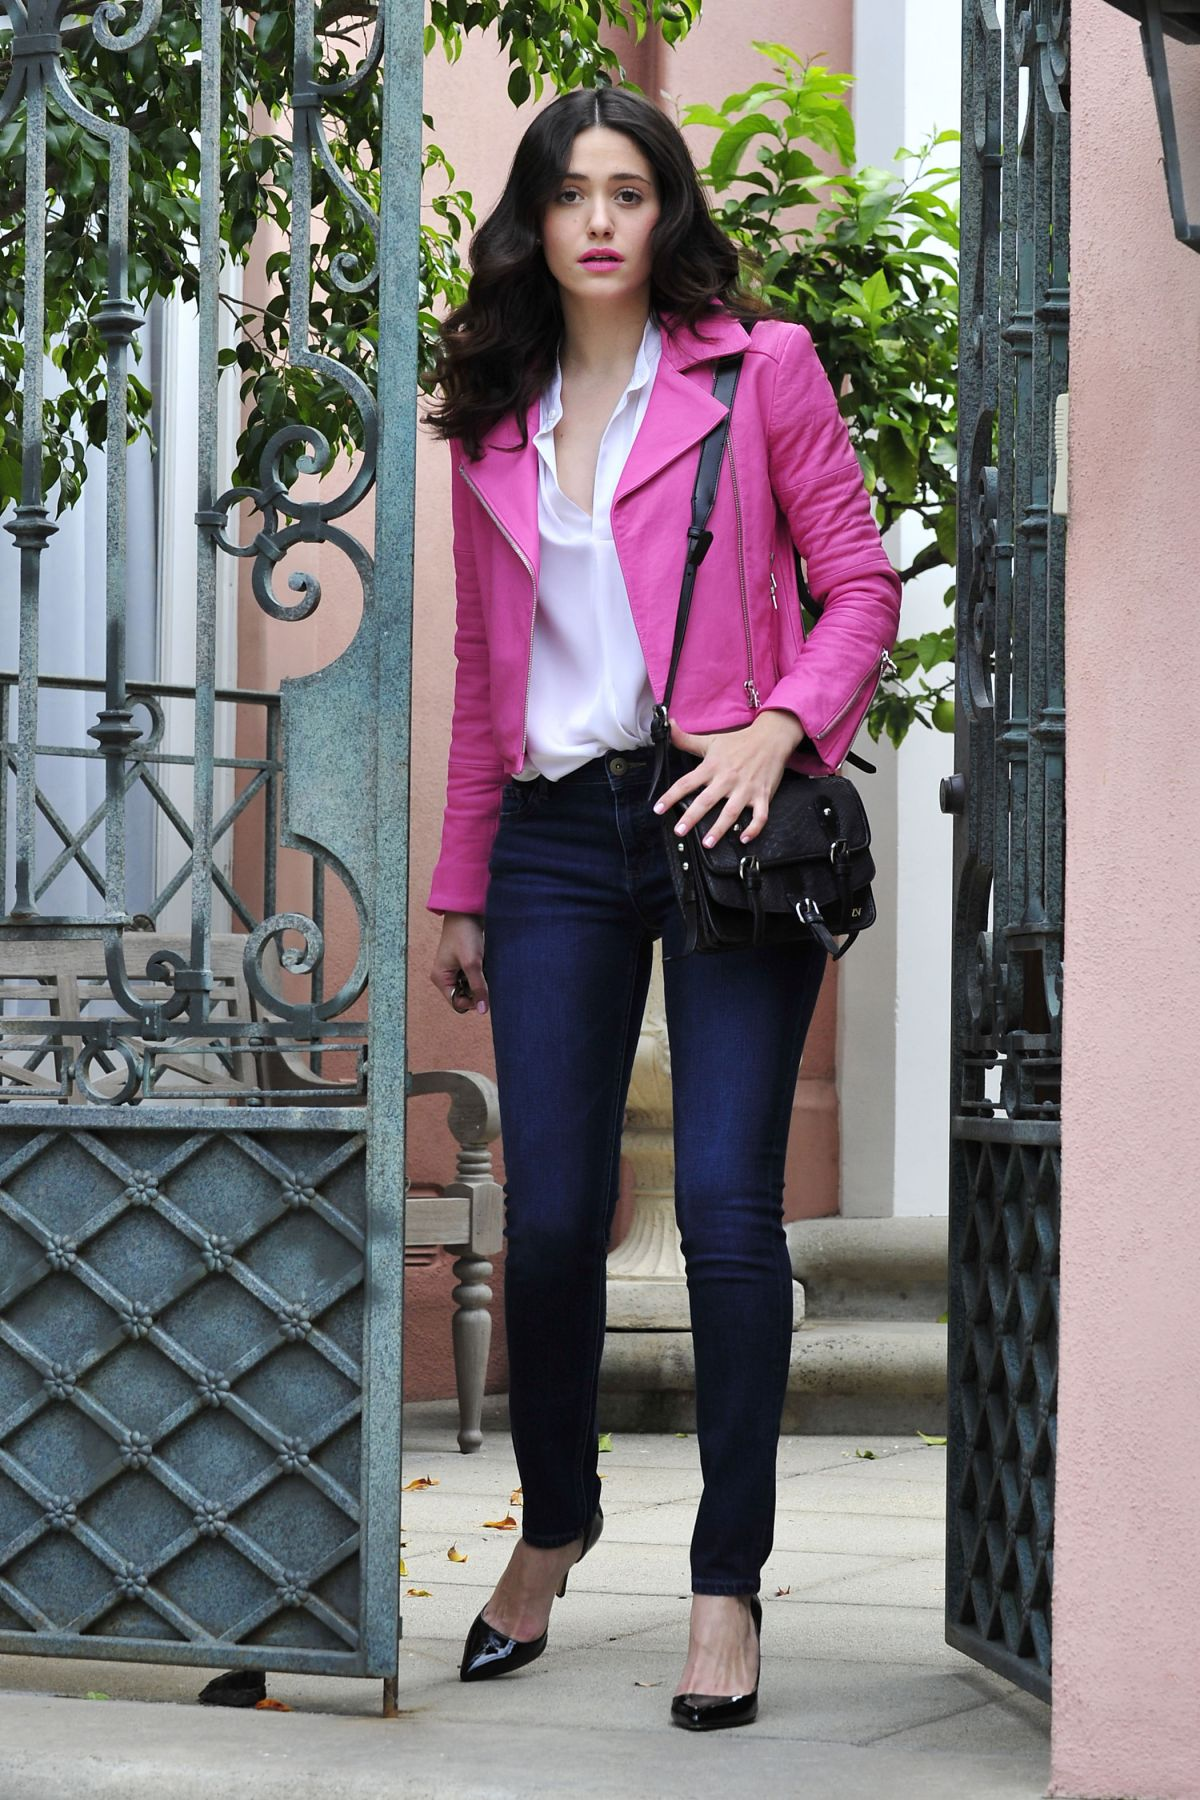 How To Wear A Leather Jacket The Femininity Mystique